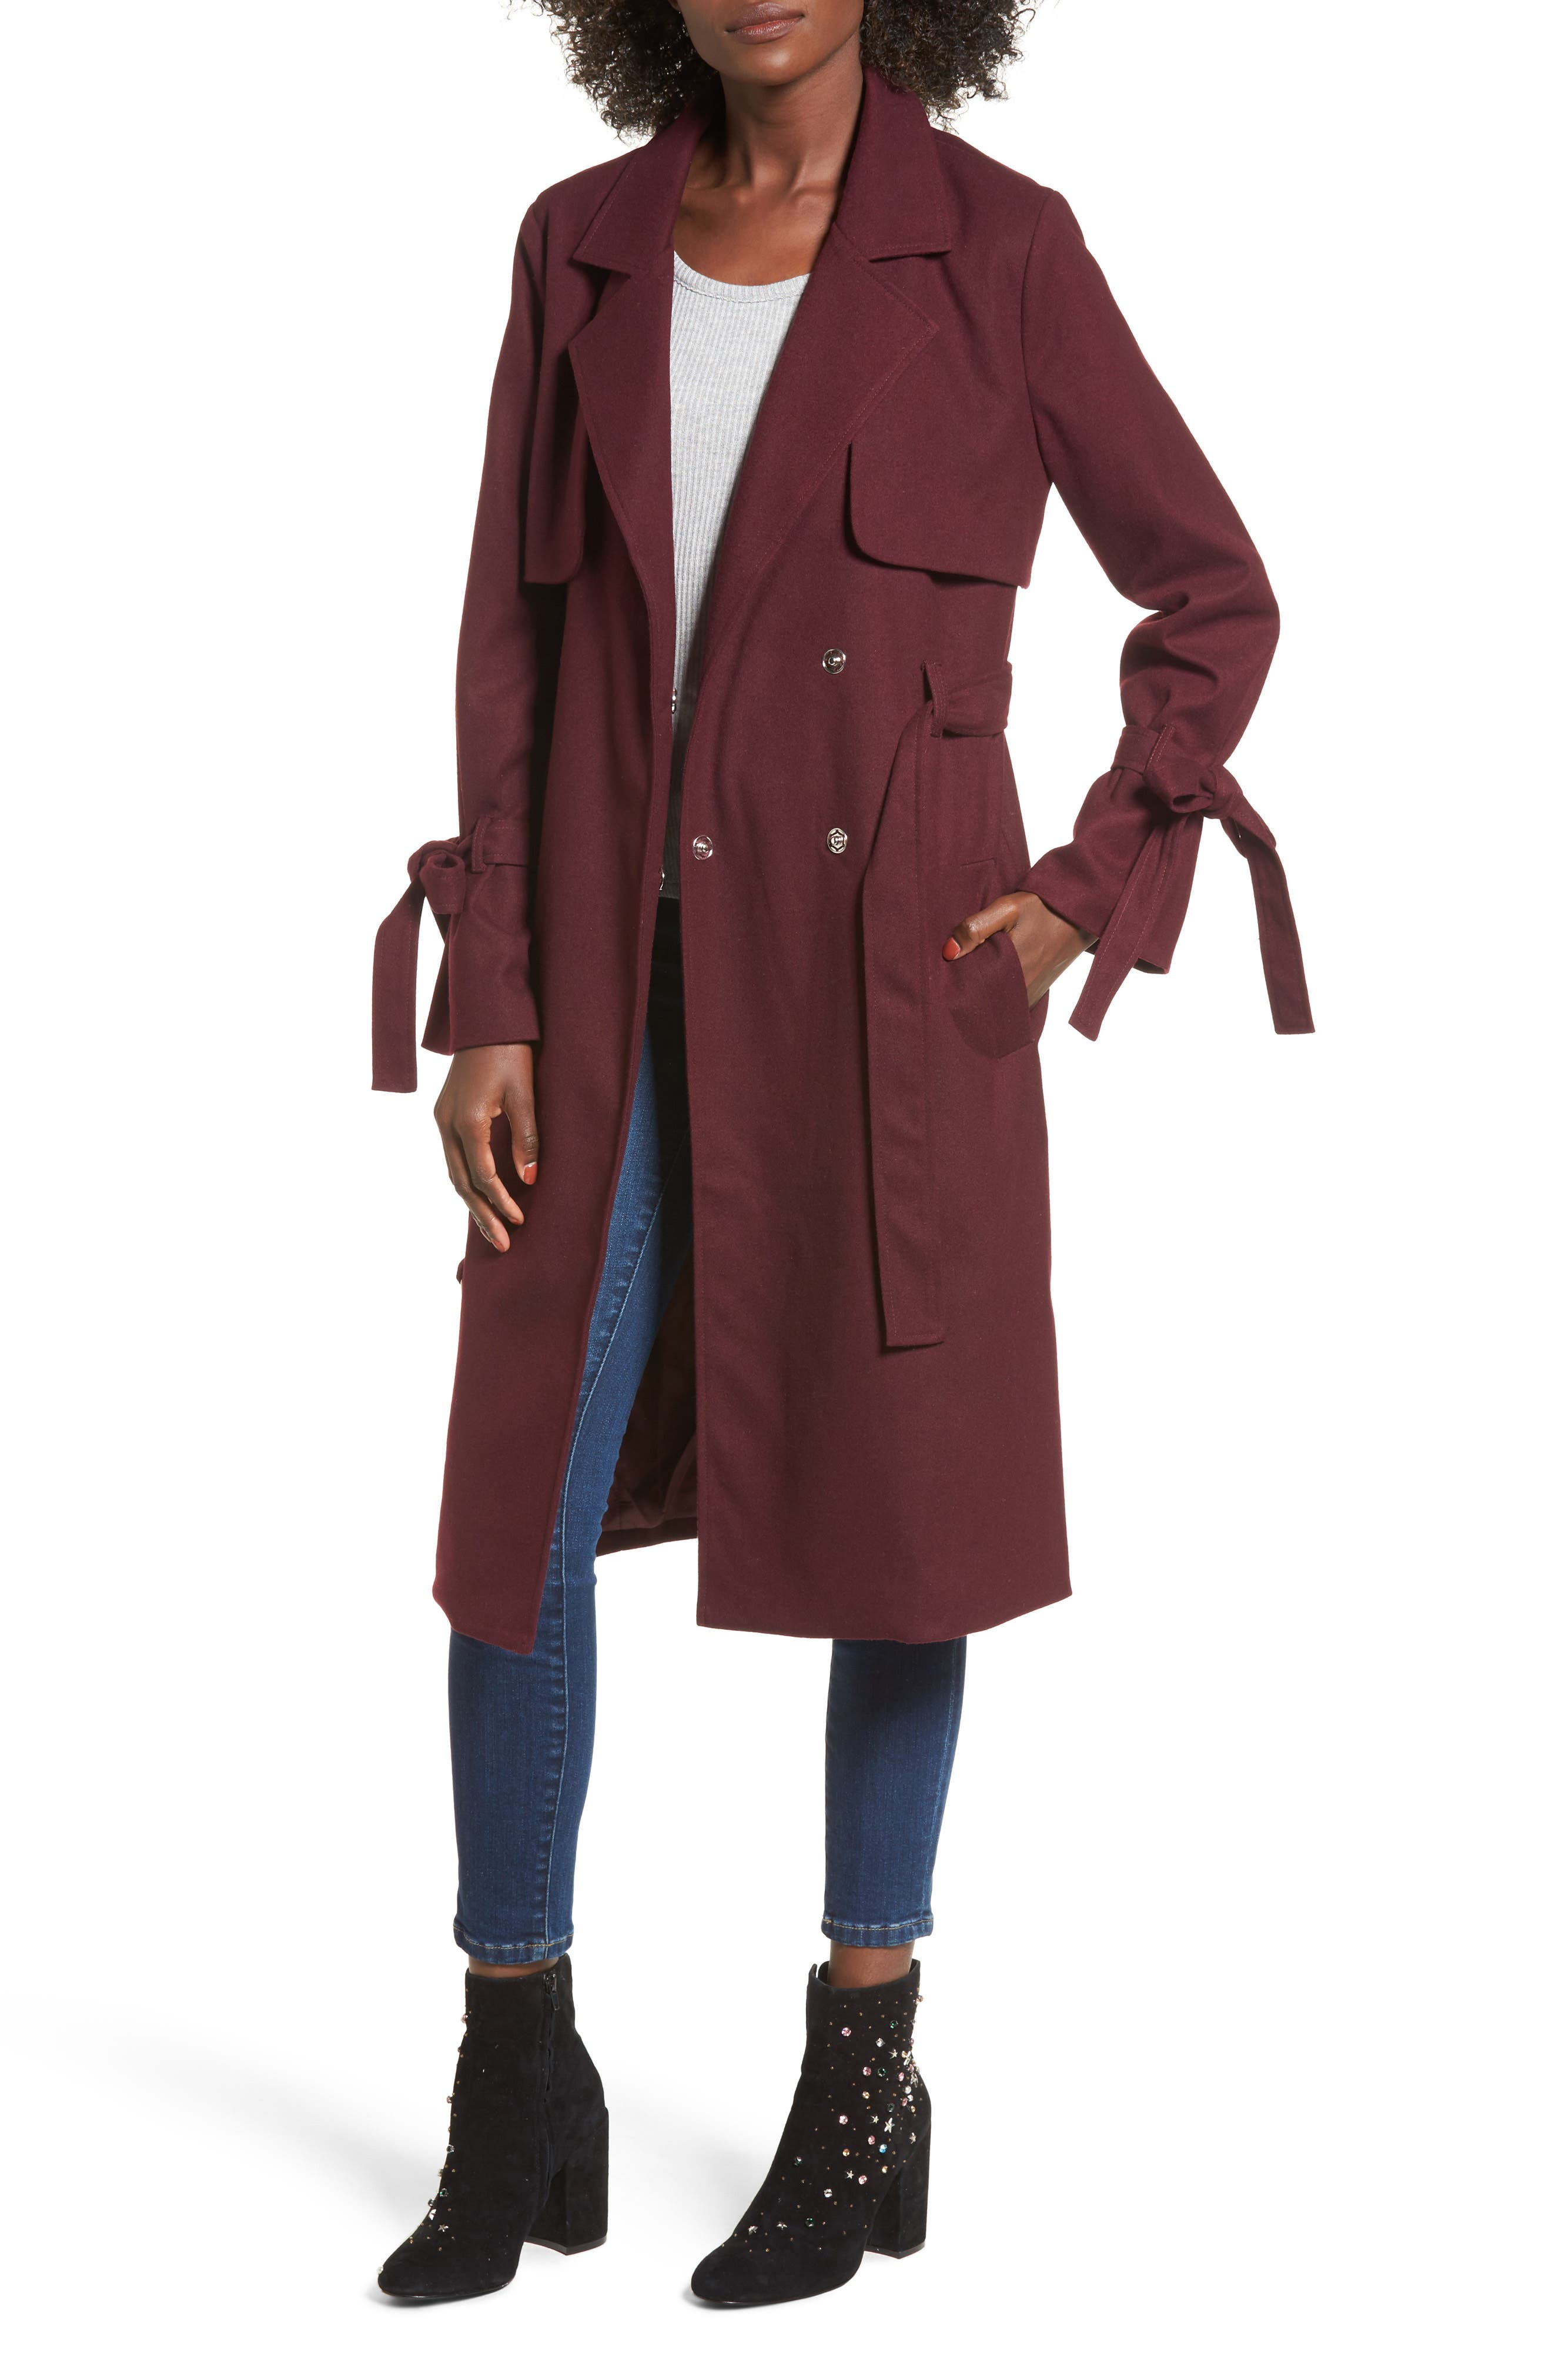 Main Image - J.O.A. Tie Sleeve Trench Coat